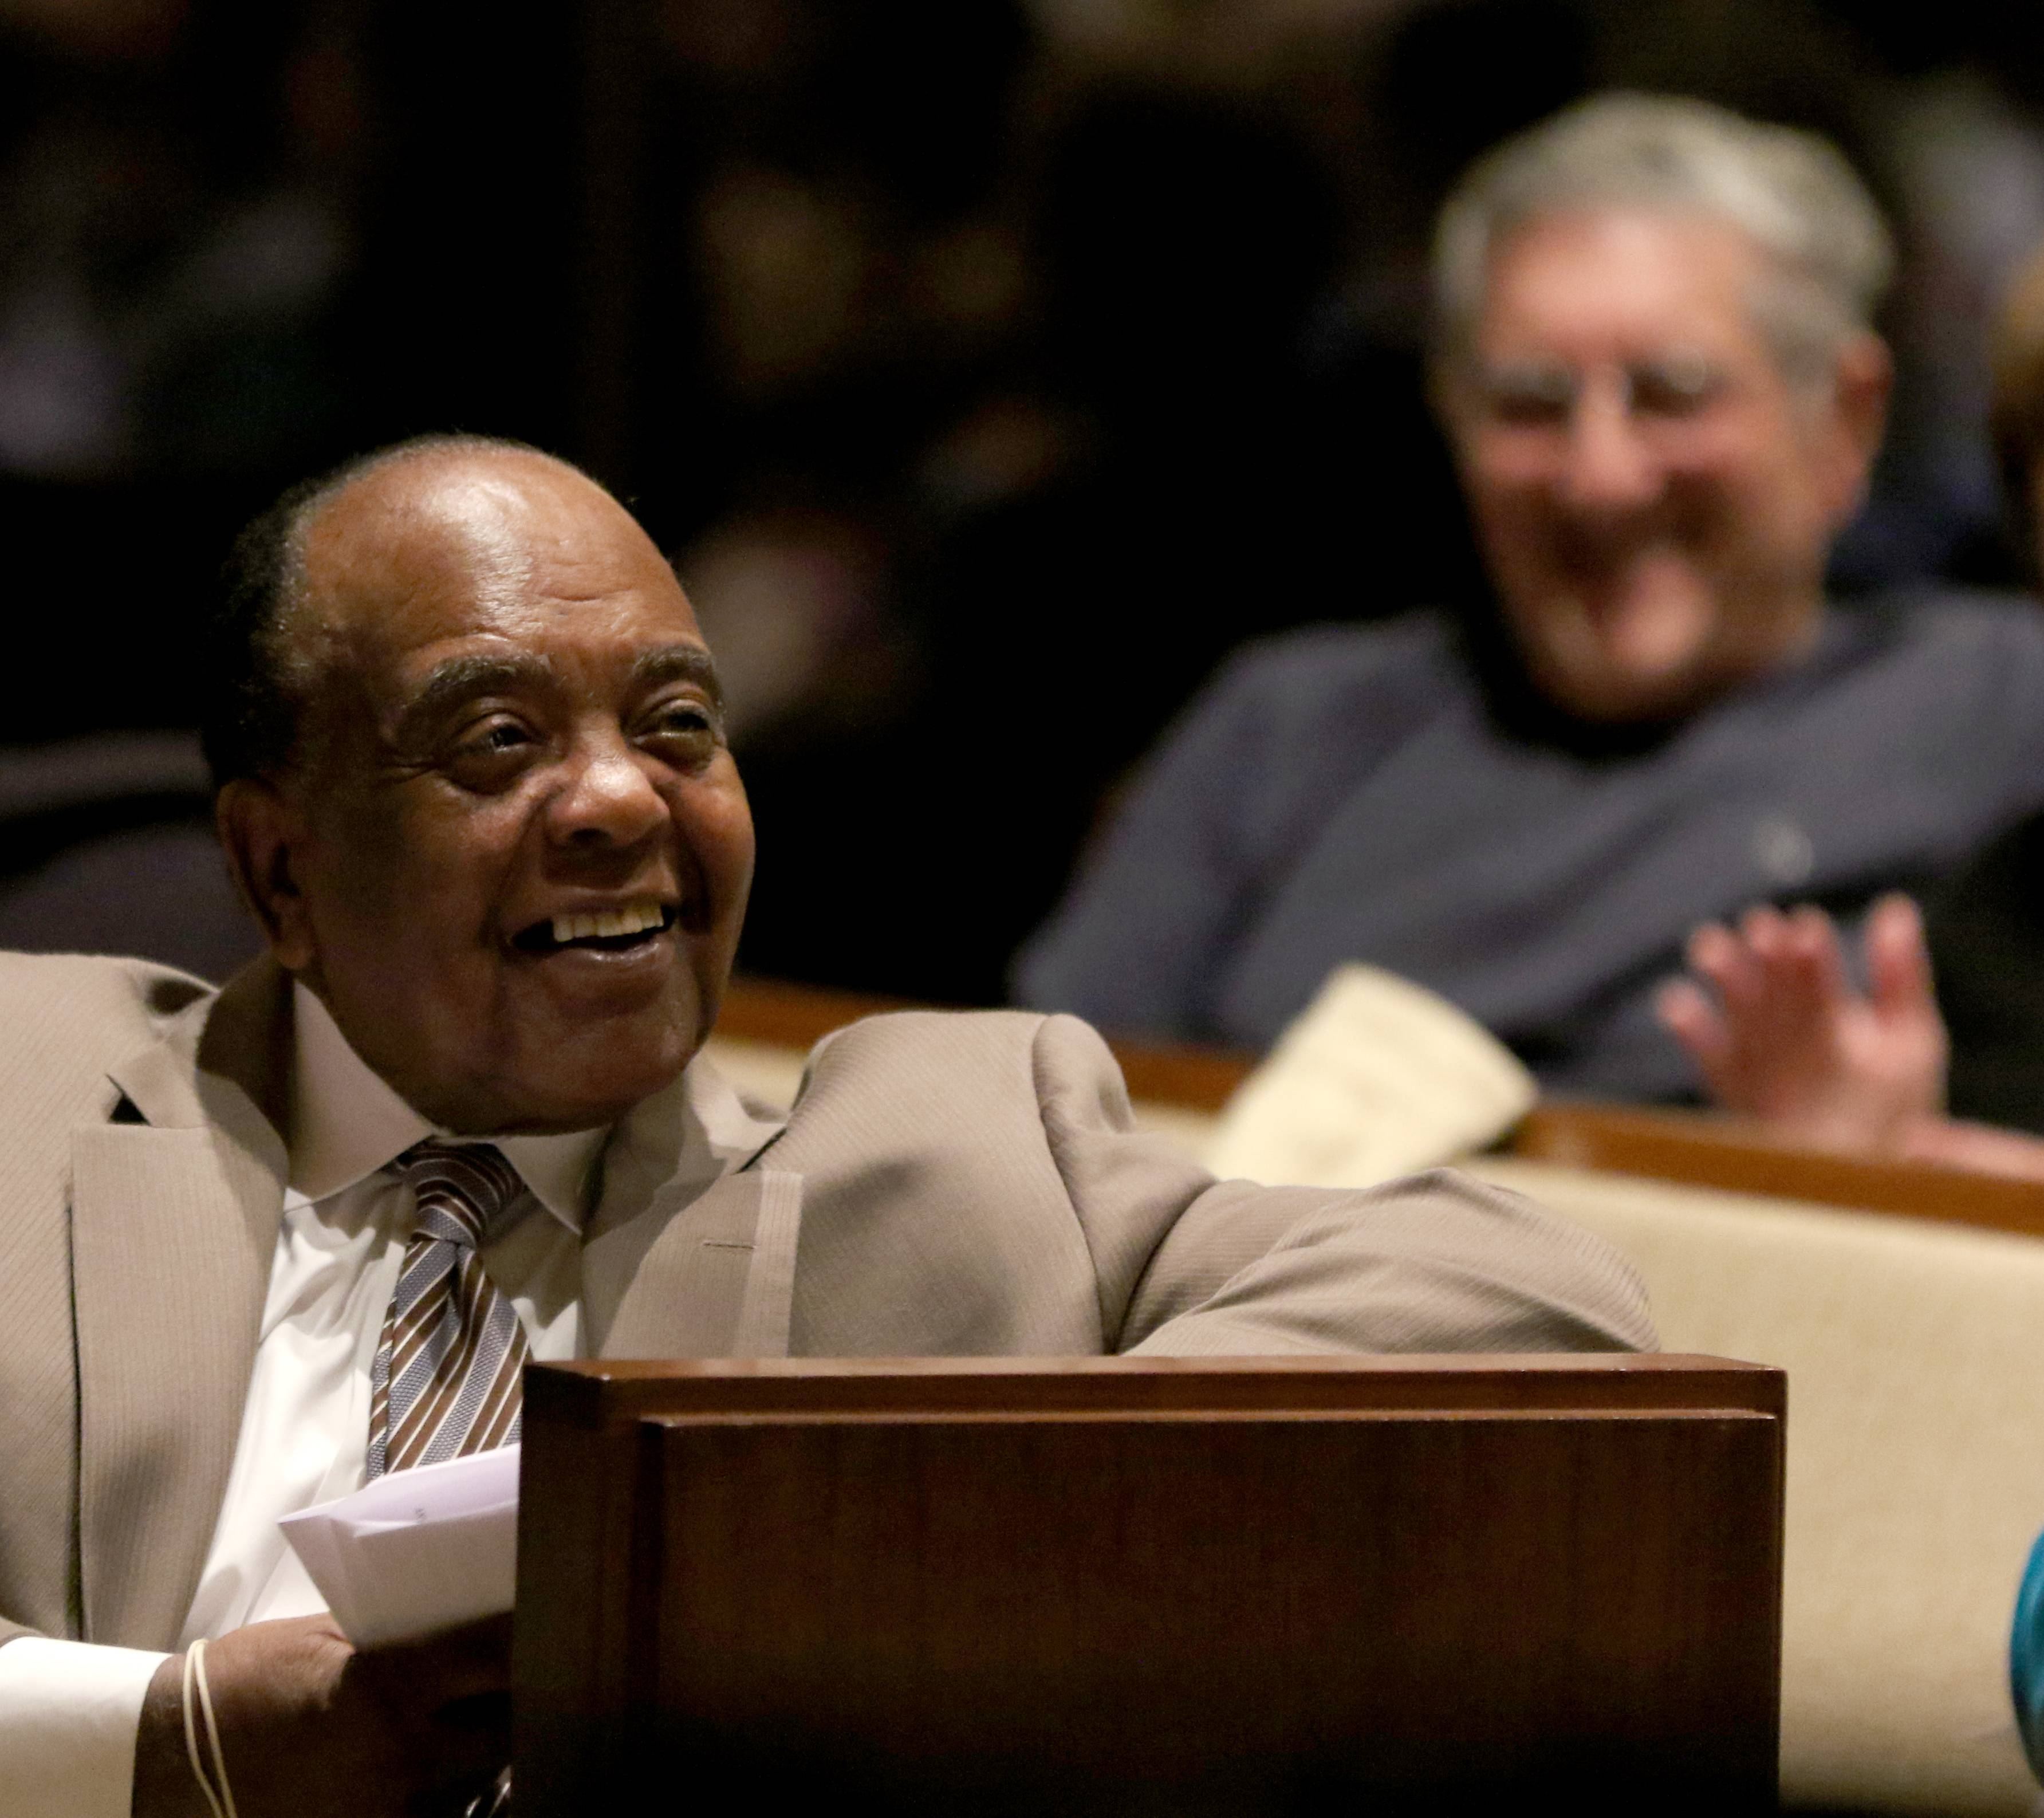 The Rev. Clyde Brooks listens Thursday to The Rev. Michael Pfleger's message at First United Methodist Church in Arlington Heights.